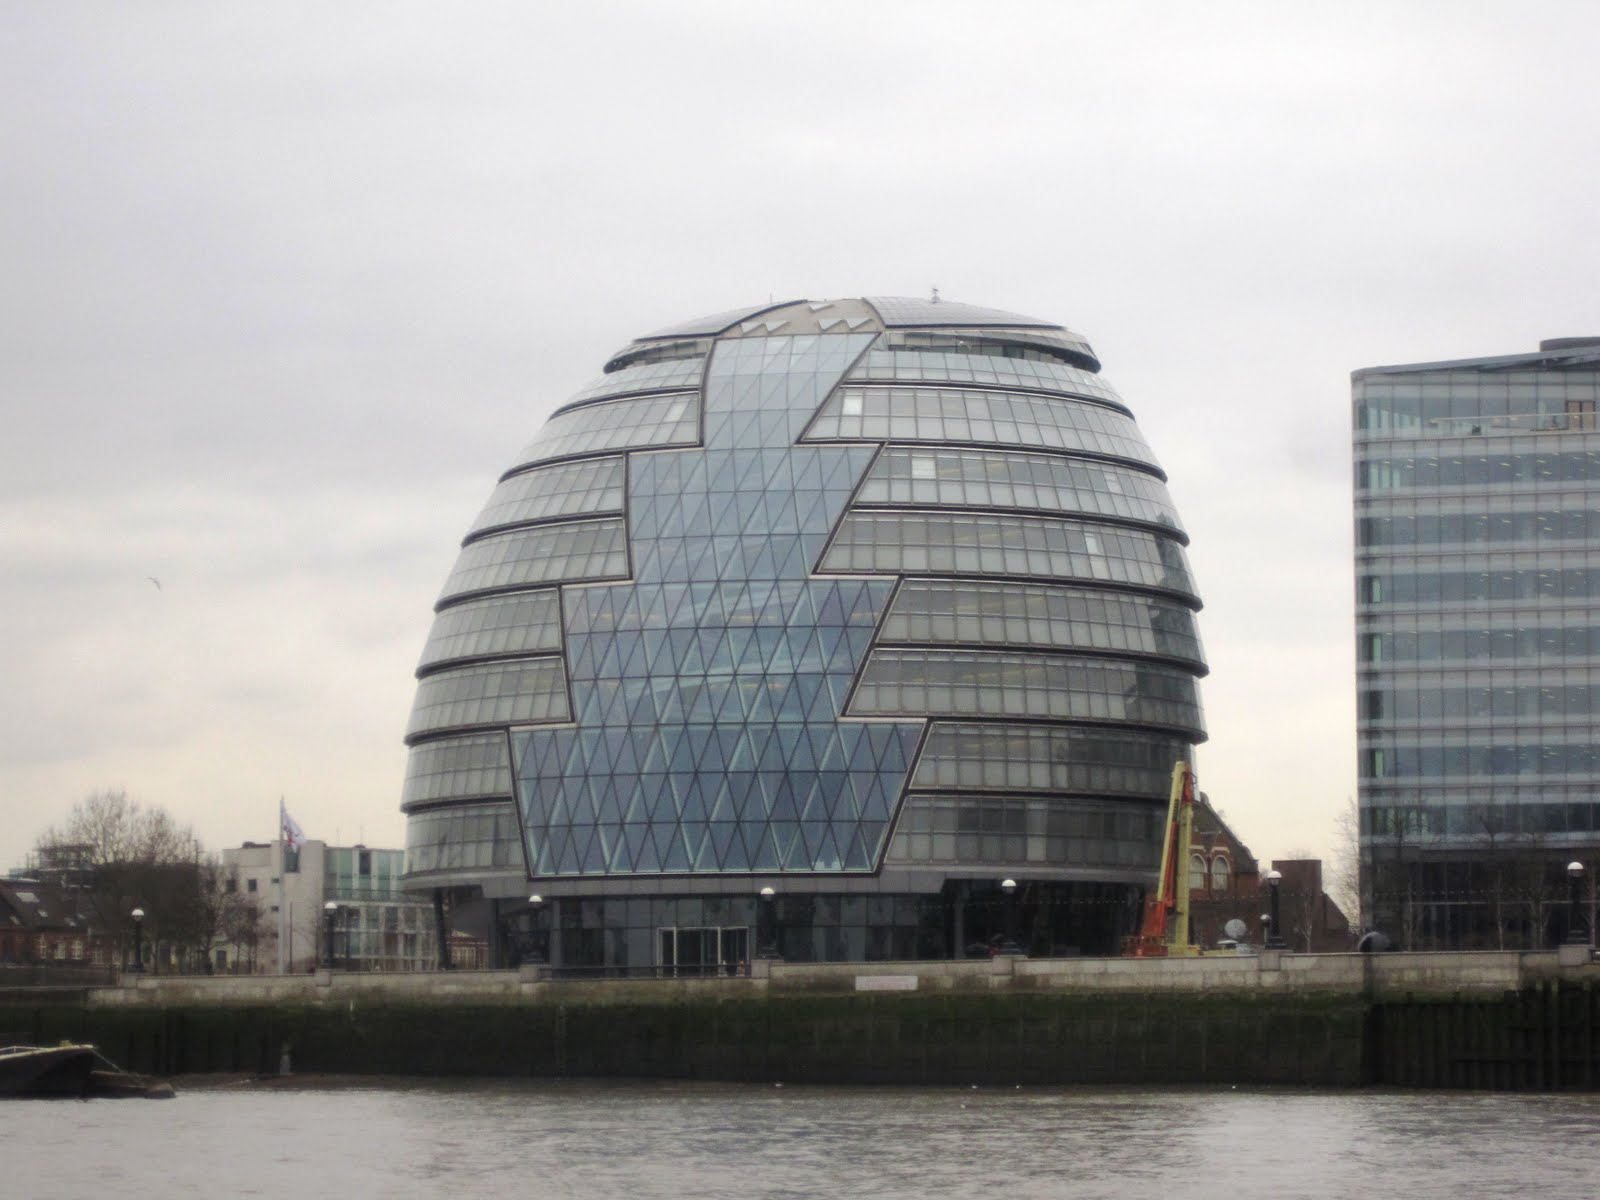 London United Kingdom  city pictures gallery : London, United Kingdom, City Hall